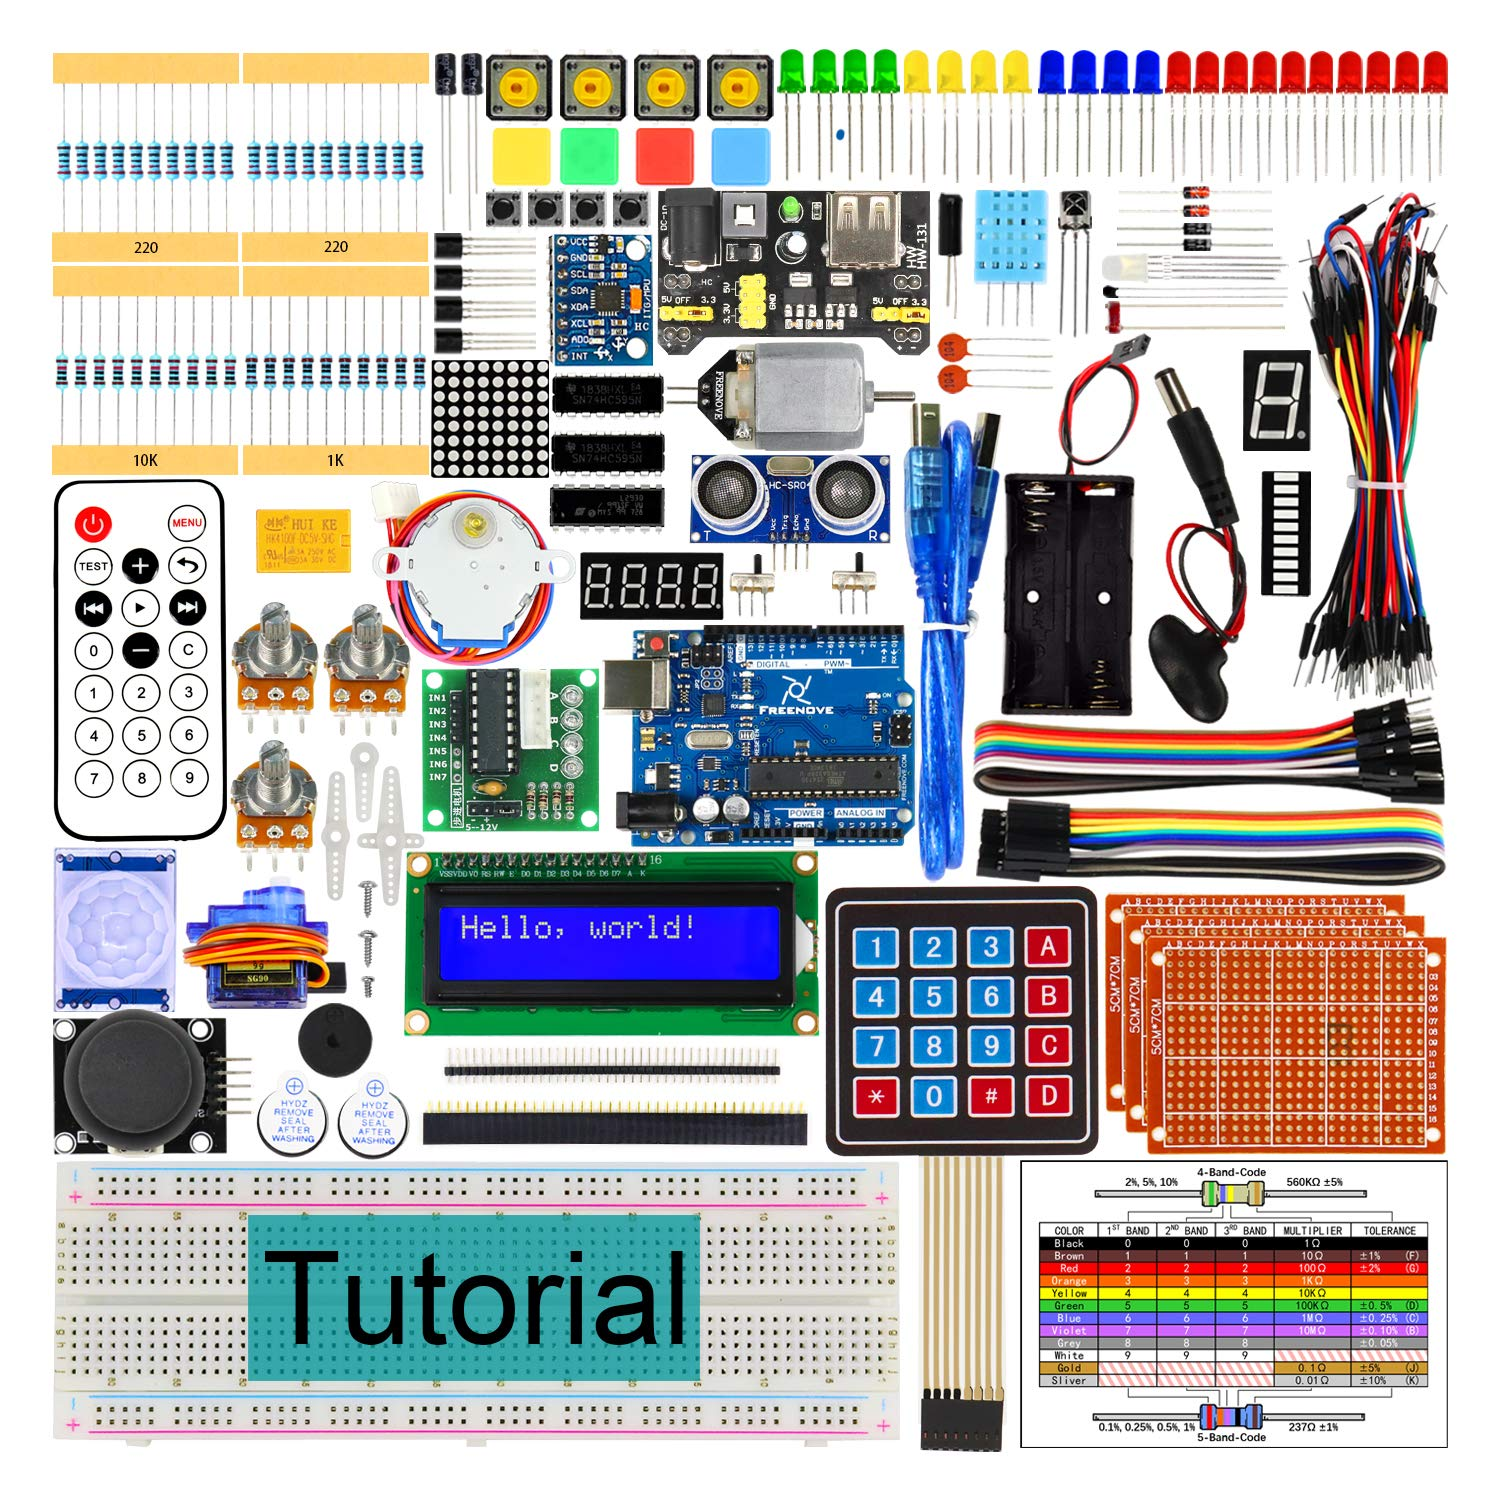 Freenove Ultimate Starter Kit with R3 Board (Compatible with Arduino IDE), 260 Pages Detailed Tutorial, 217 Items, 51 Projects, Solderless Breadboard by Freenove